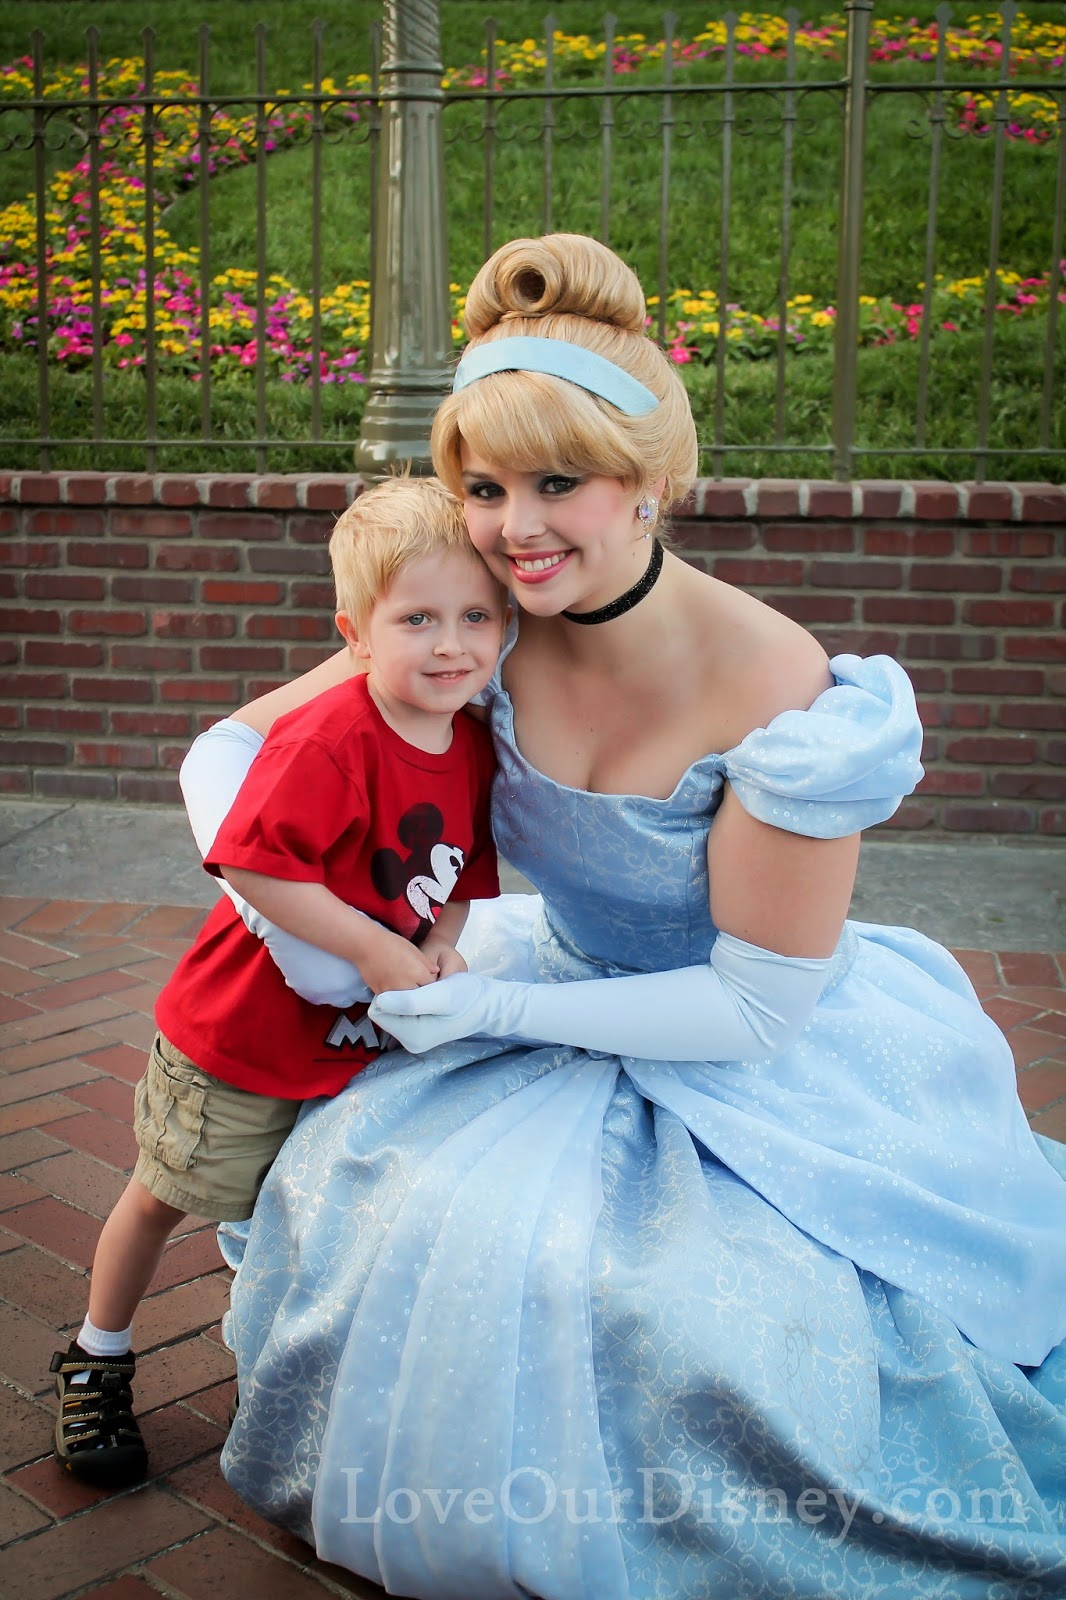 LoveOurDisney.com shares some tips on finding characters while in Disneyland park.